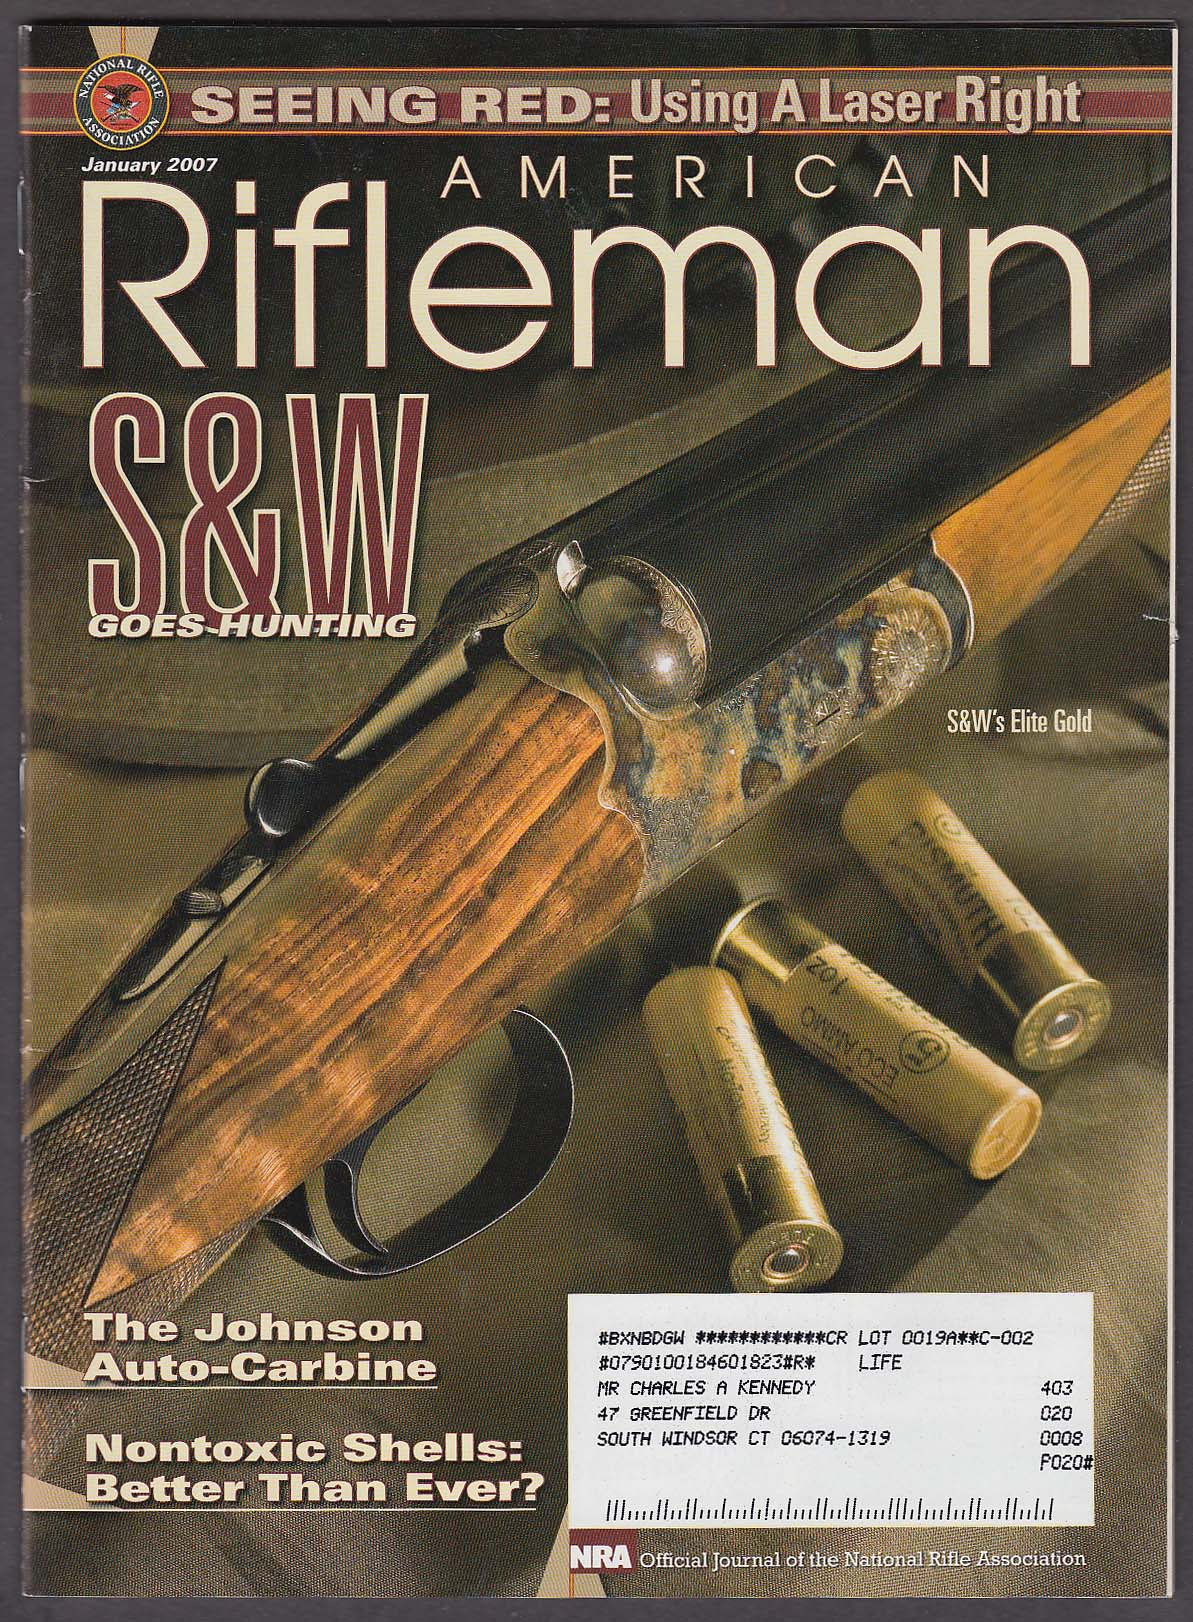 AMERICAN RIFLEMAN Smith & Wesson Elite Gold Johnson Auto-Carbine + 1 2007